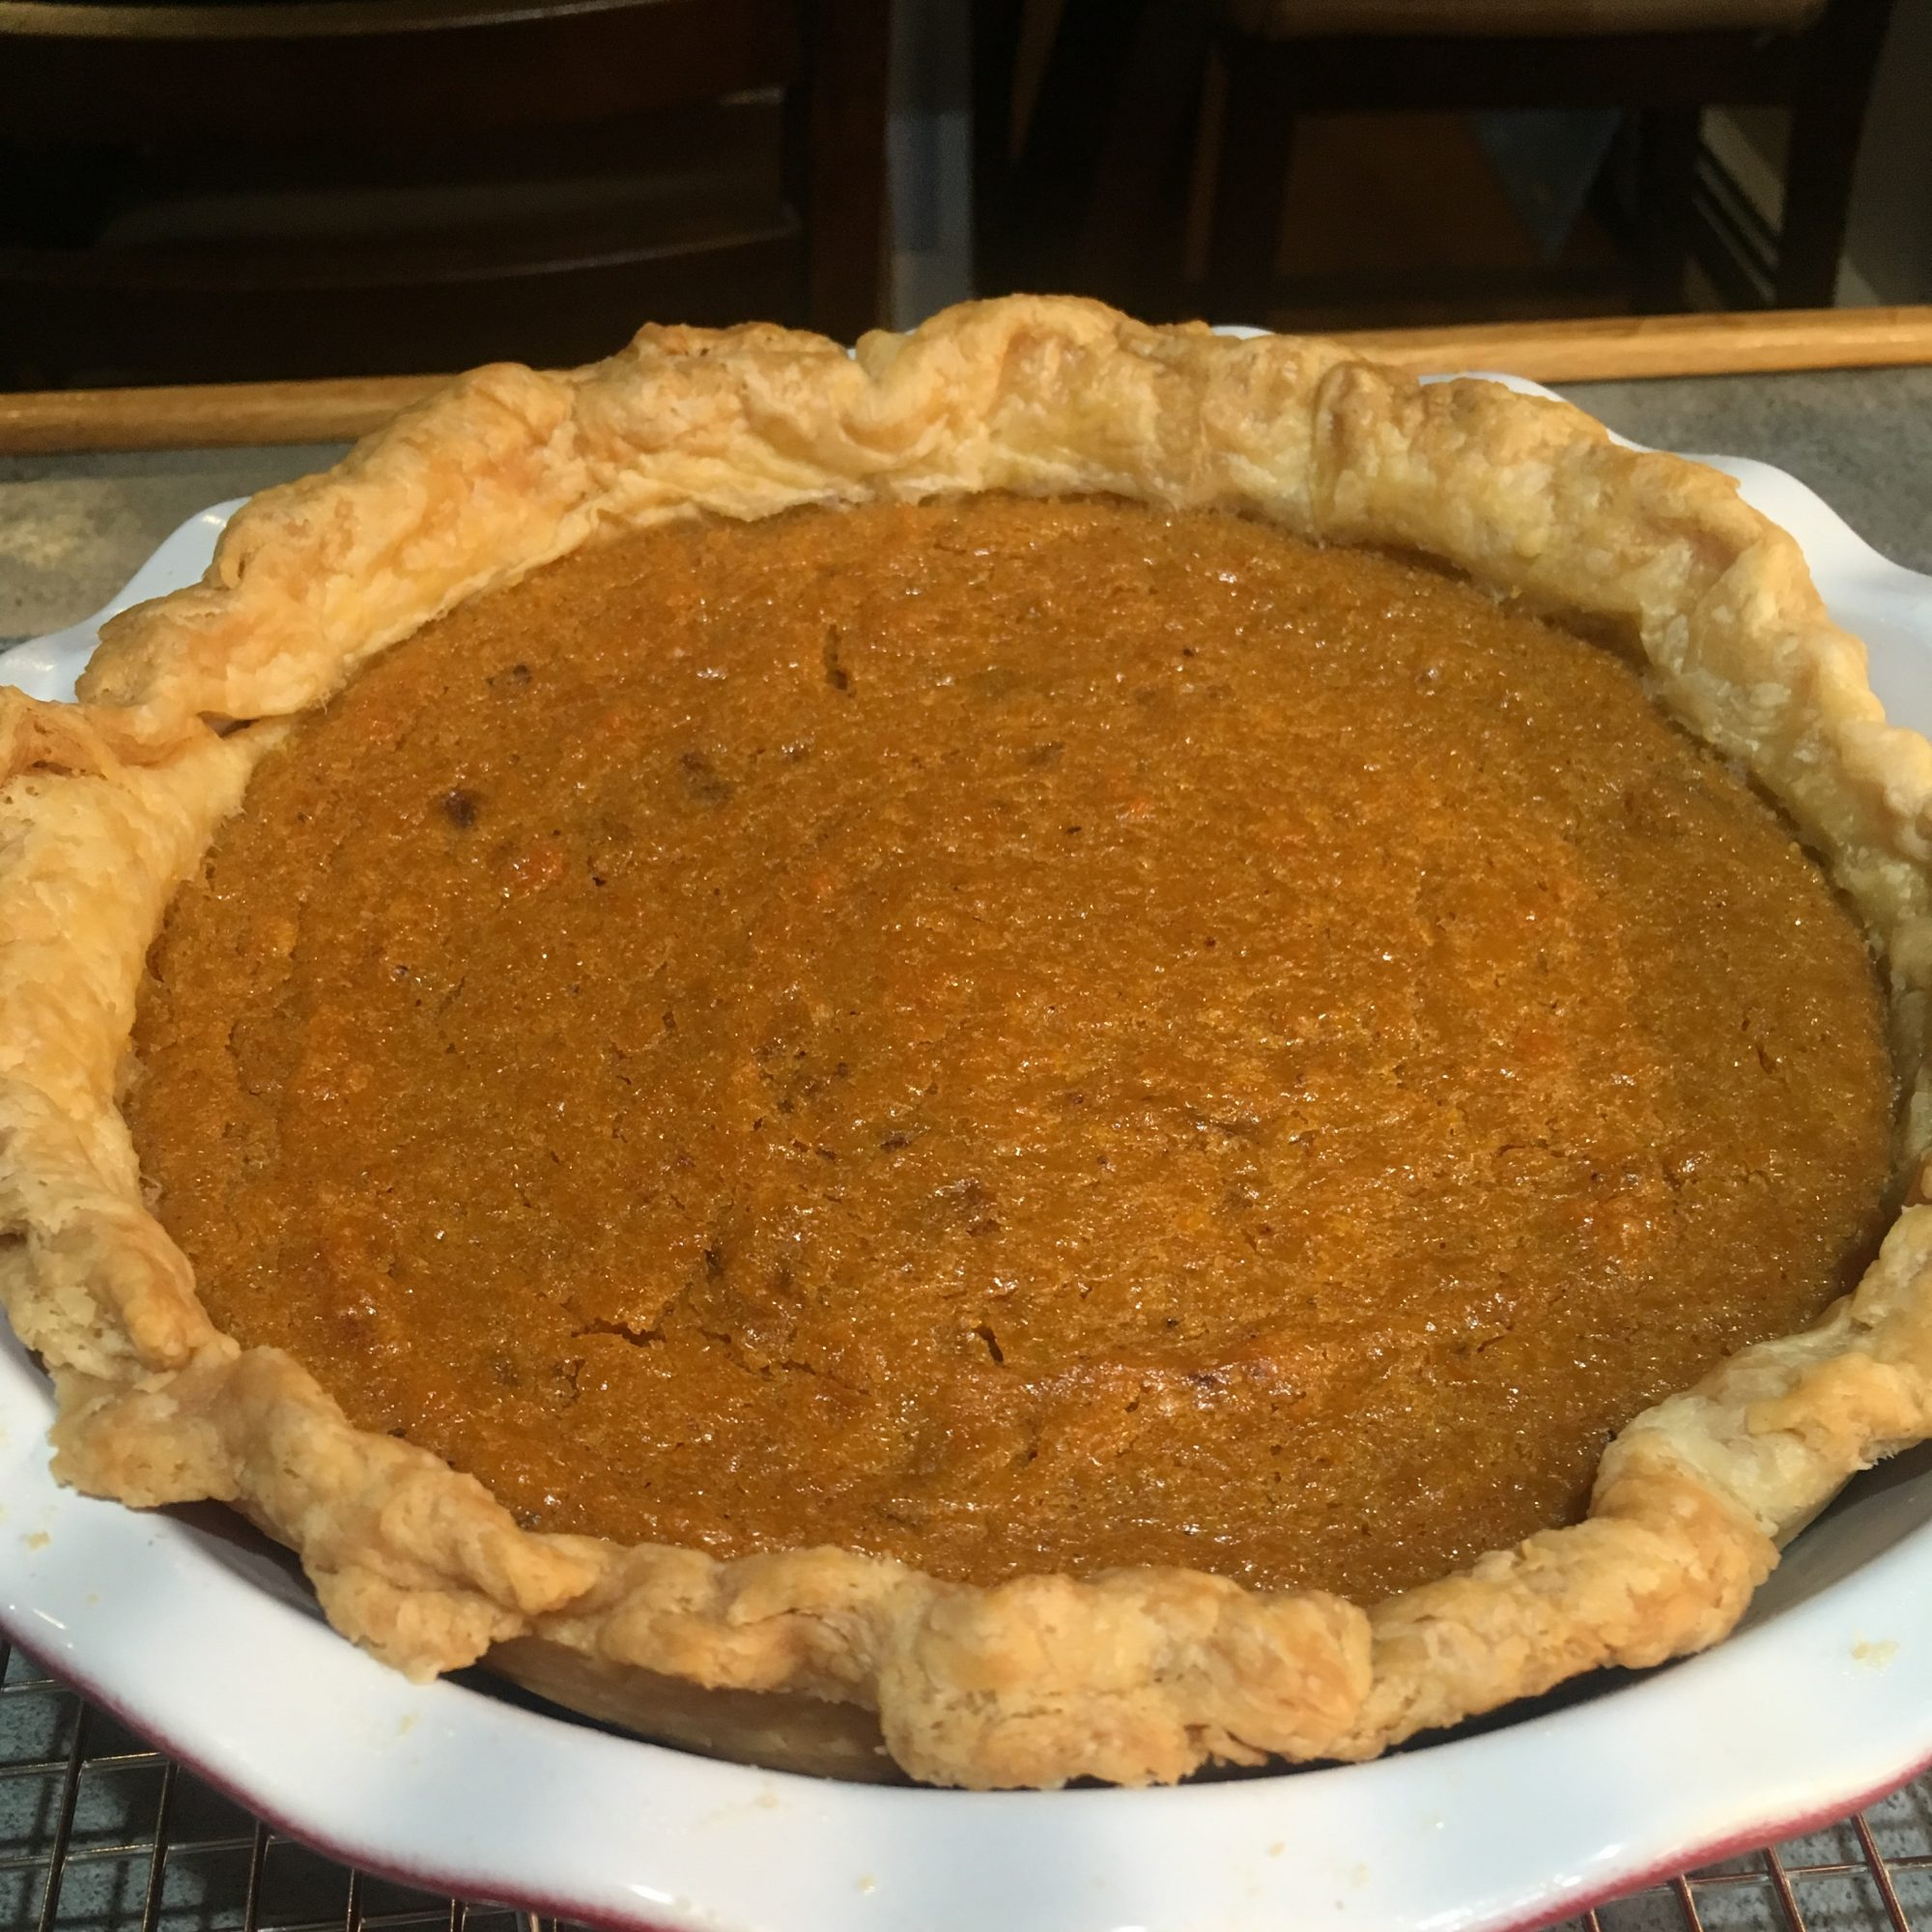 a whole pie with a homemade crust in a ceramic pie plate